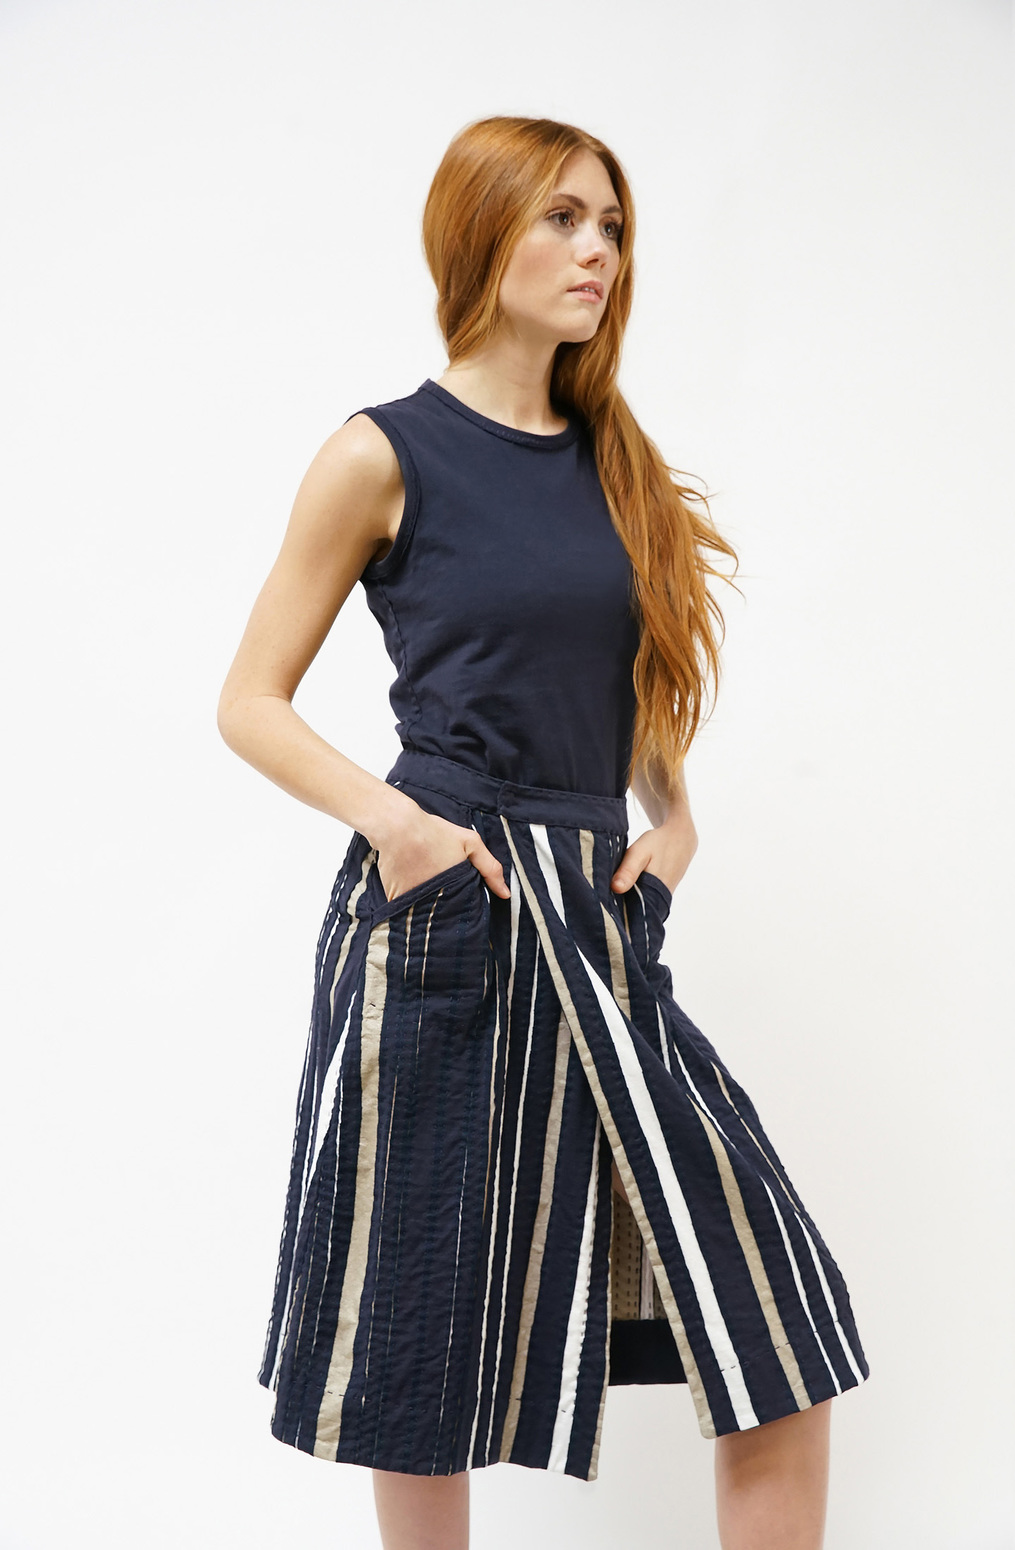 Alabama chanin emily stripe skirt2